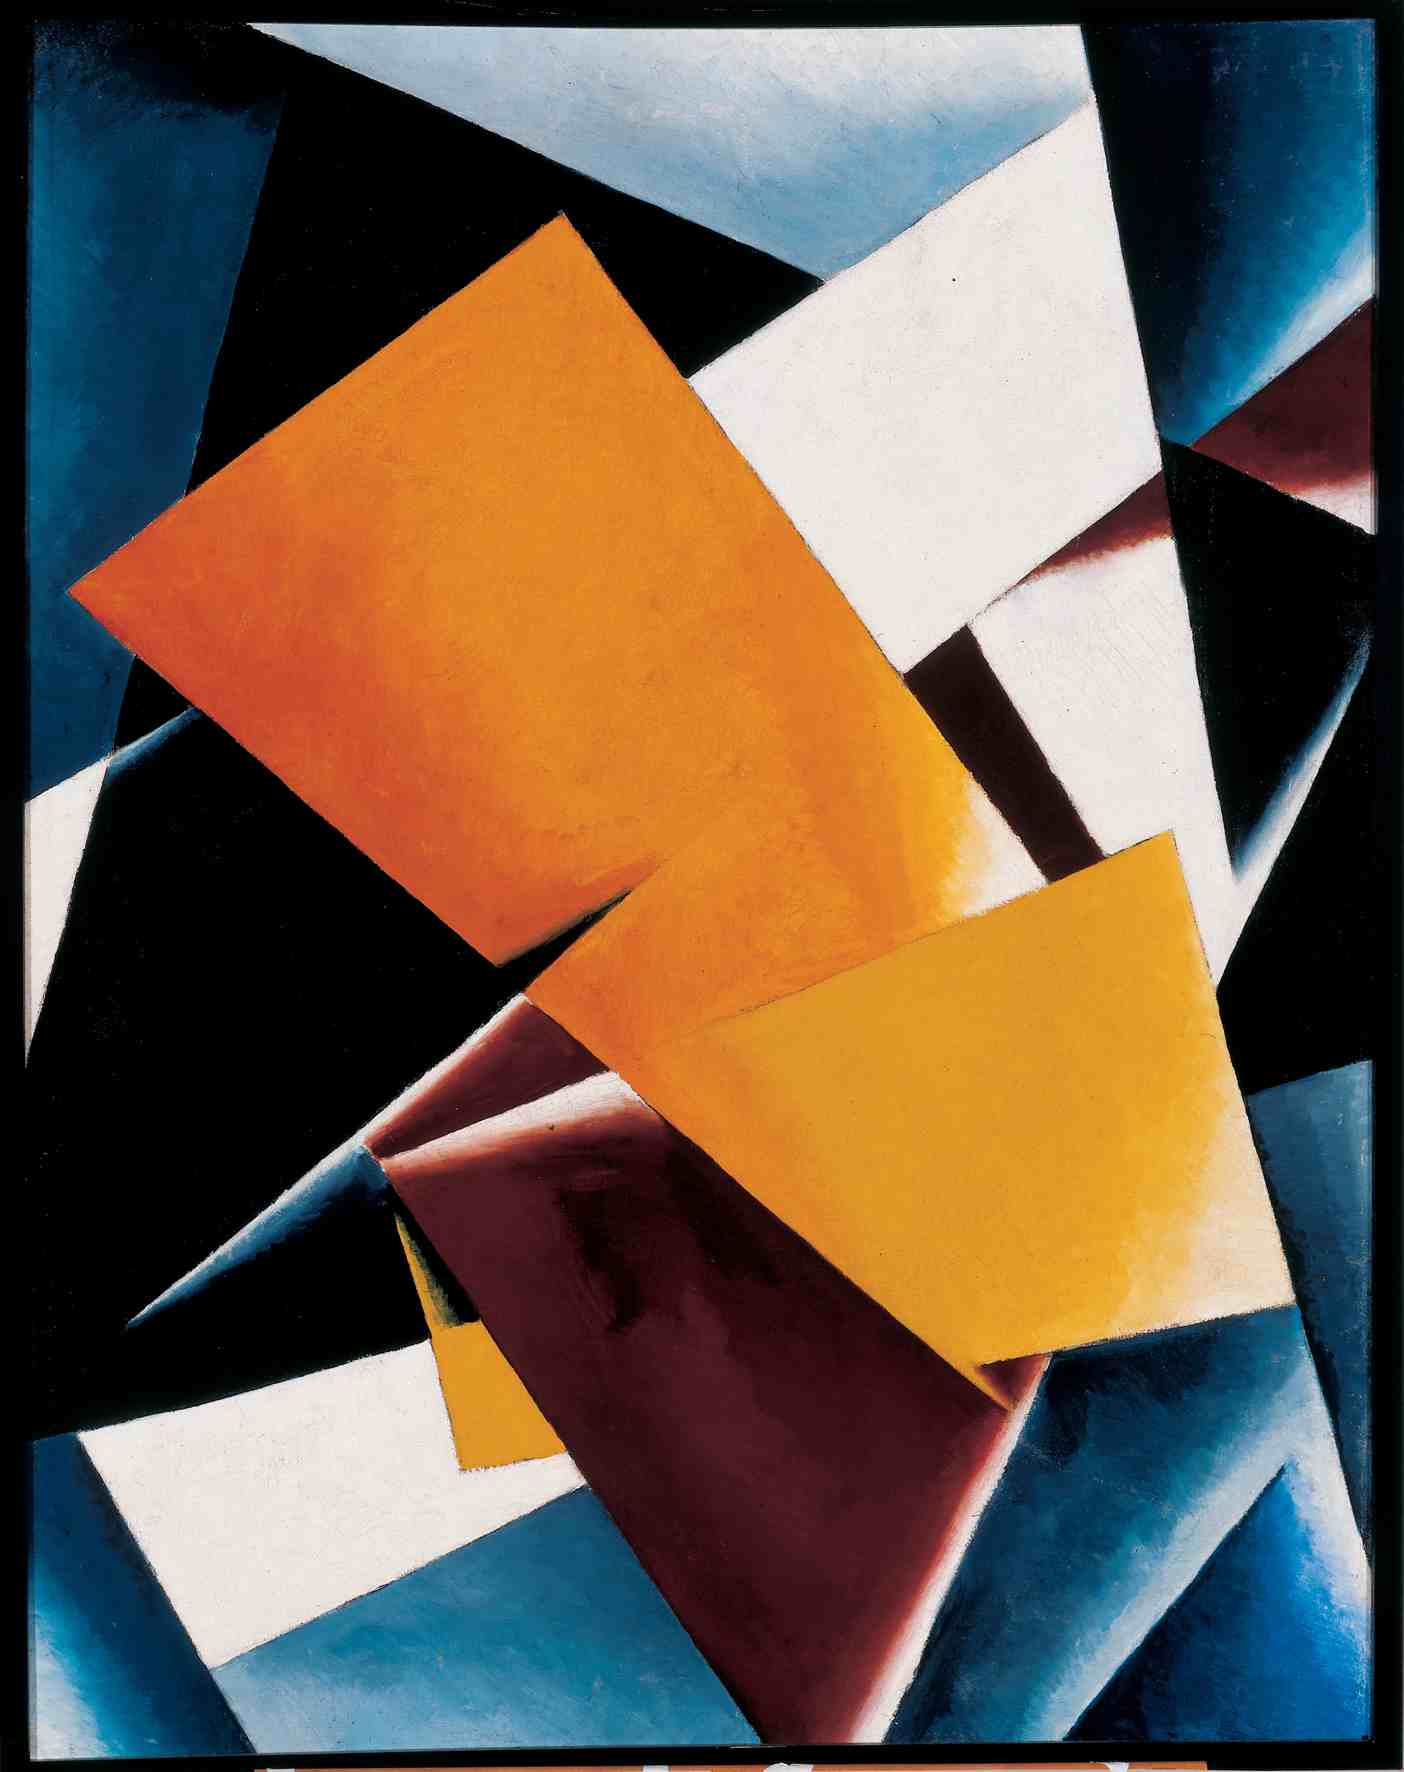 Lyubov Popova   Inventing Abstraction: 1910-1925, at MoMA painterly architectonic